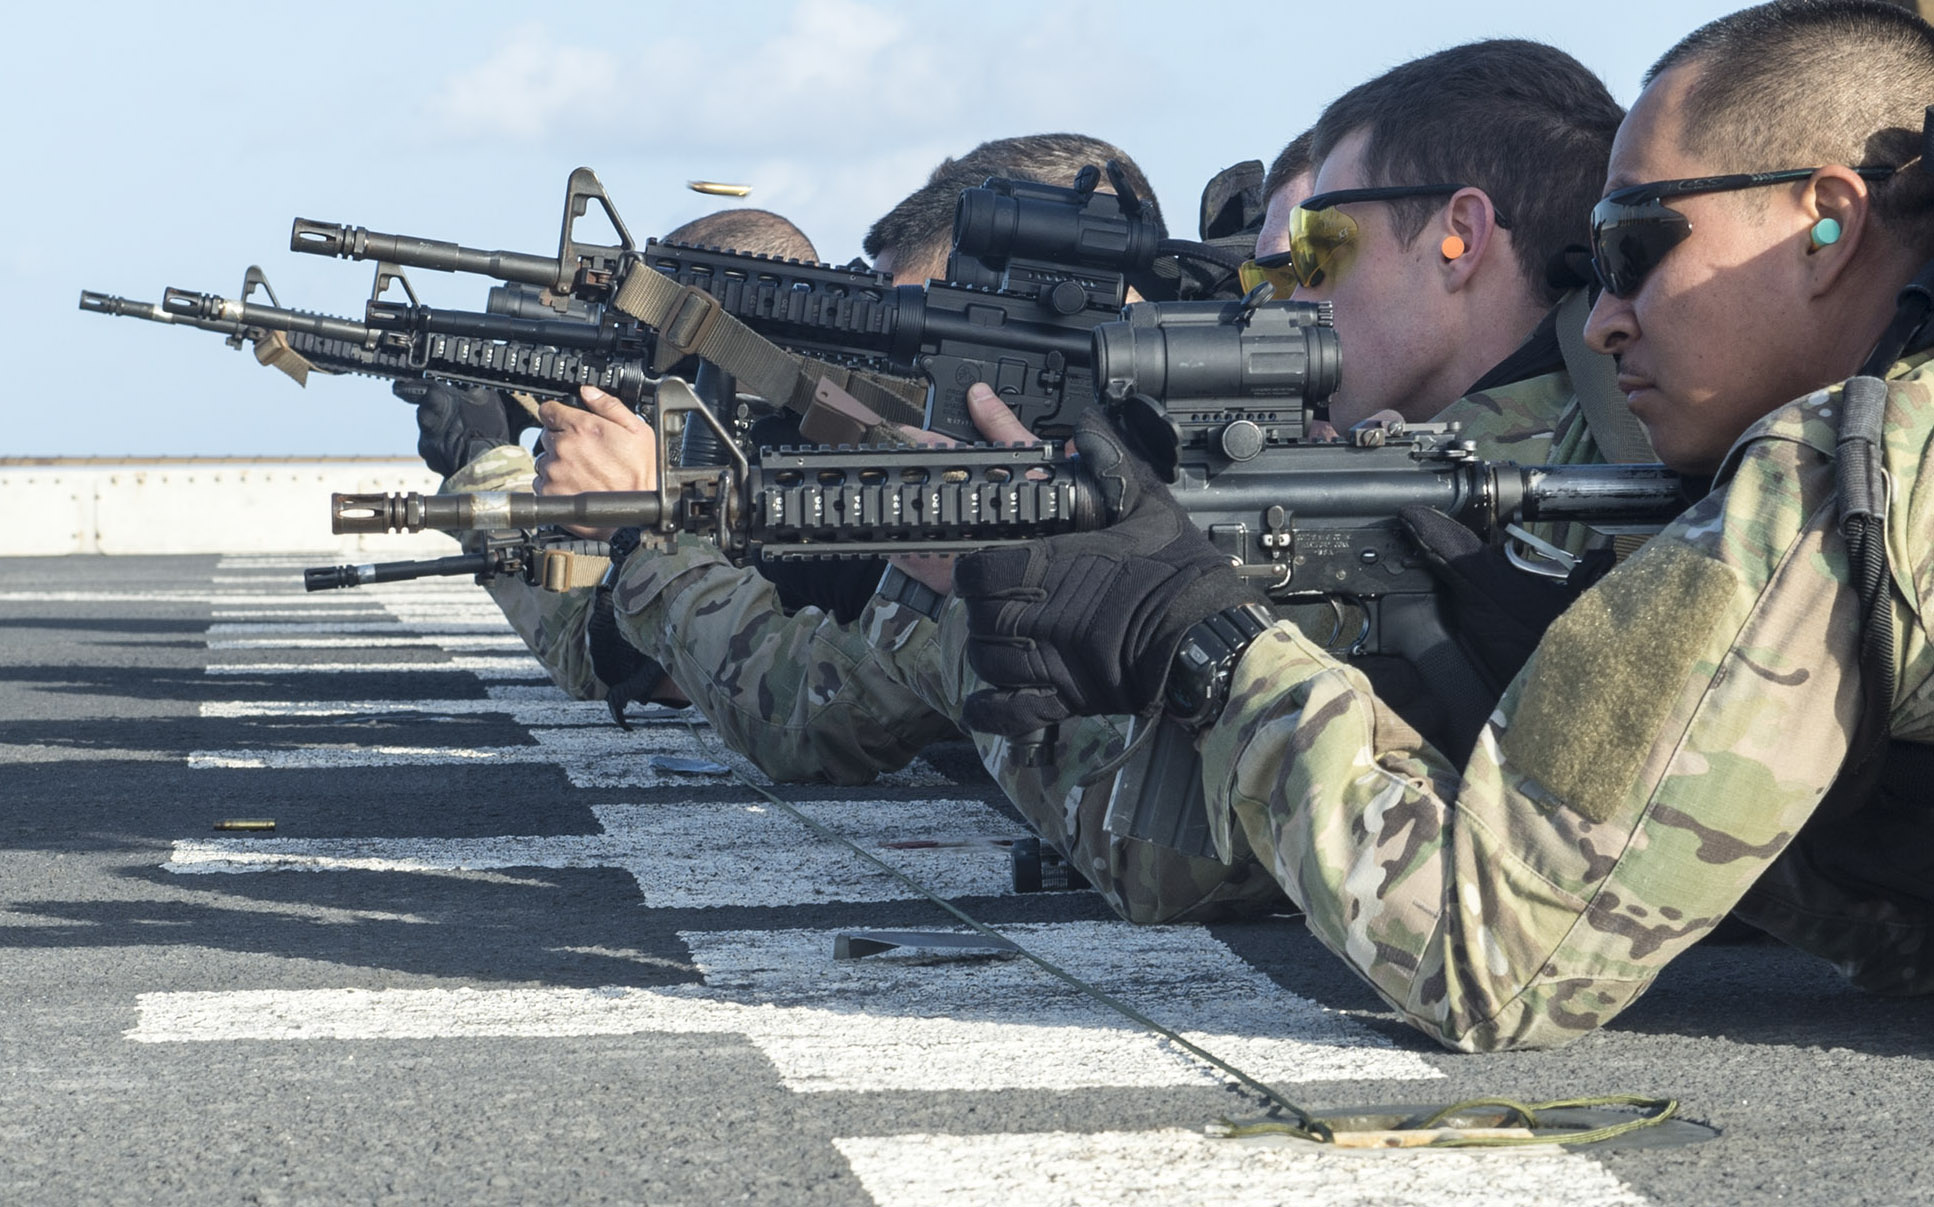 ATLANTIC OCEAN (Dec. 24, 2014) Members of the visit, board, search and seizure team of the San Antonio-class amphibious transport dock ship USS New York (LPD 21) participate in a live-fire exercise with the Marine Reconnaissance Force, 2nd Marine Expeditionary Force, 24th Marine Expeditionary Unit (24th MEU) on the ship's flight deck. New York, part of the Iwo Jima Amphibious Ready Group is conducting naval operations in the U.S. 6th Fleet area of responsibility in support of U.S. national security interests in Europe. (U.S. Navy photo by Mass Communication Specialist 3rd Class Jonathan B. Trejo/Released)